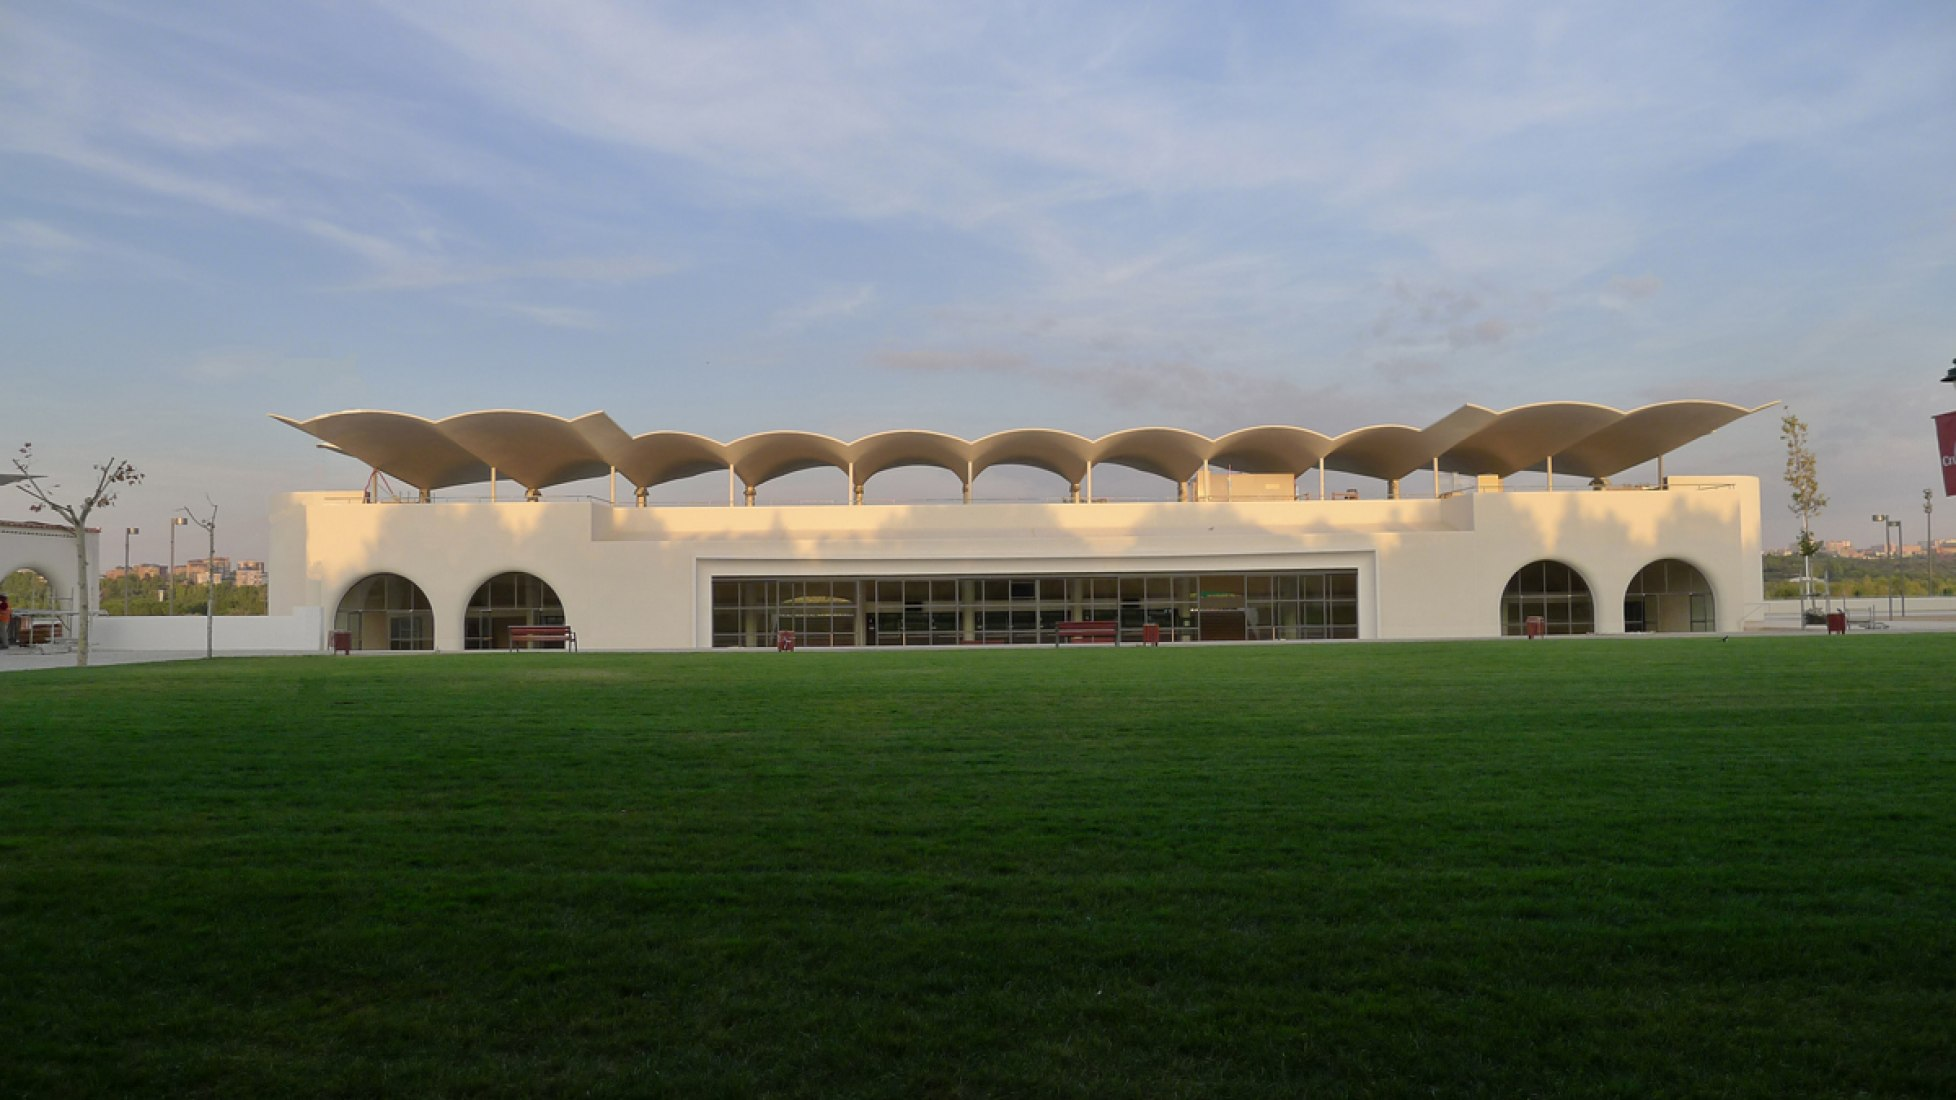 The Zarzuela Hippodrome, remodelation by Jerónimo Junquera study on the project designed in 1934 by Arniches, Dominguez and Torroja. Image courtesy of JUNQUERA ARQUITECTOS.